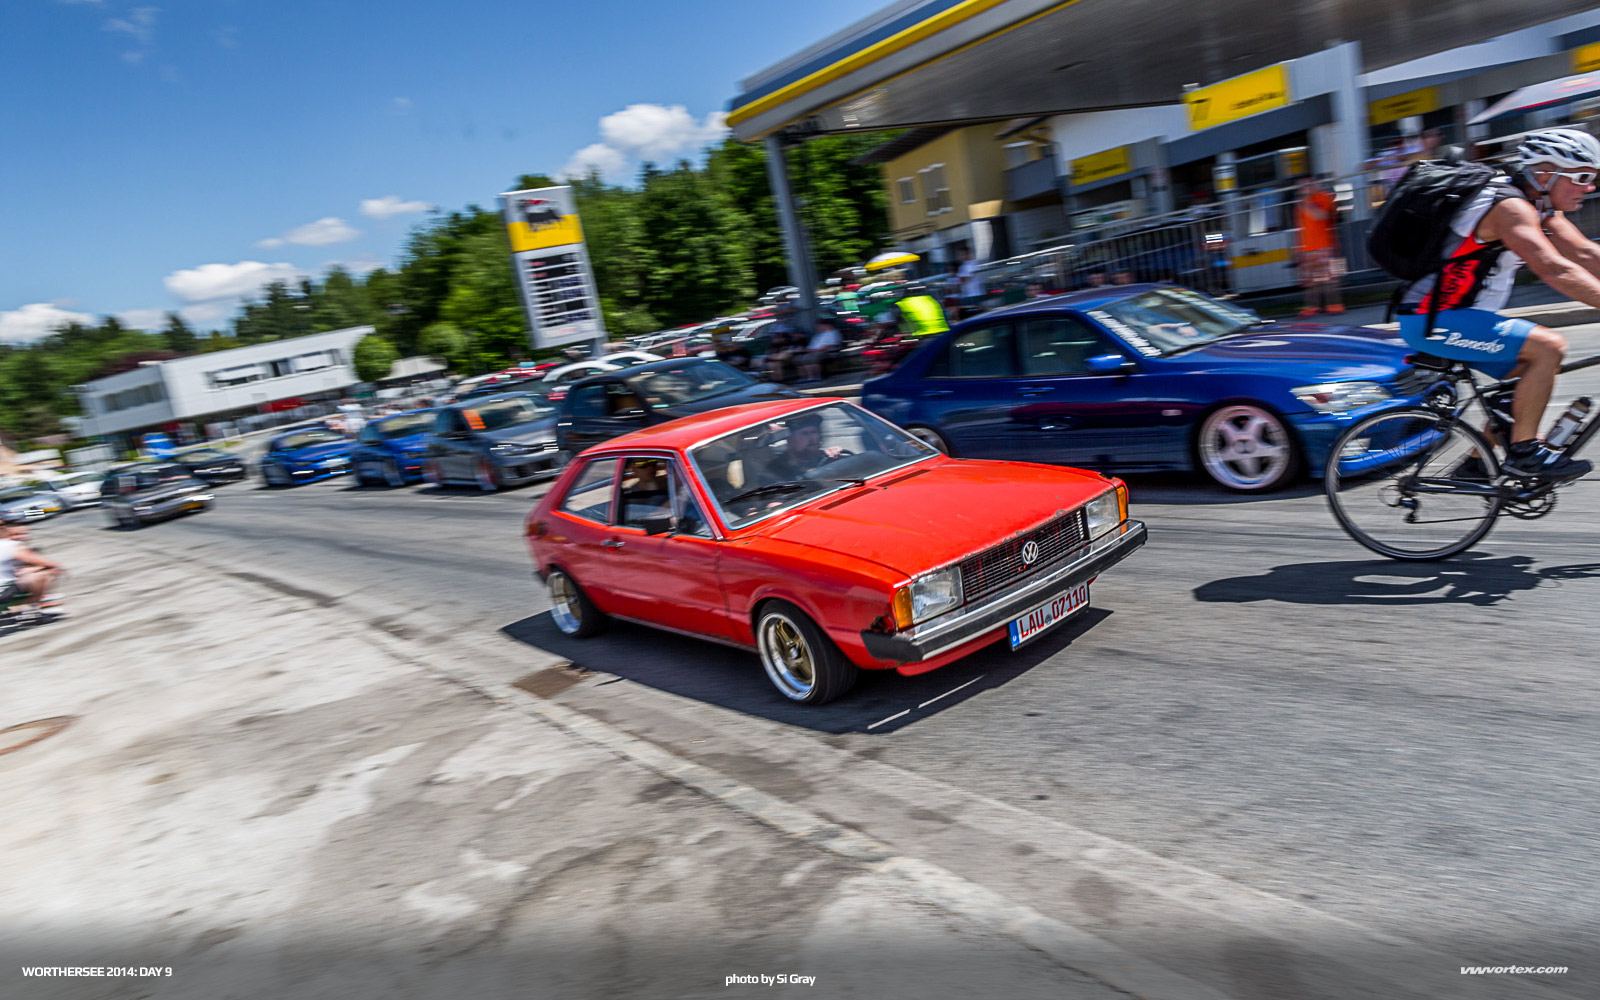 2014-Worthersee-Day-9-Si-Gray-397